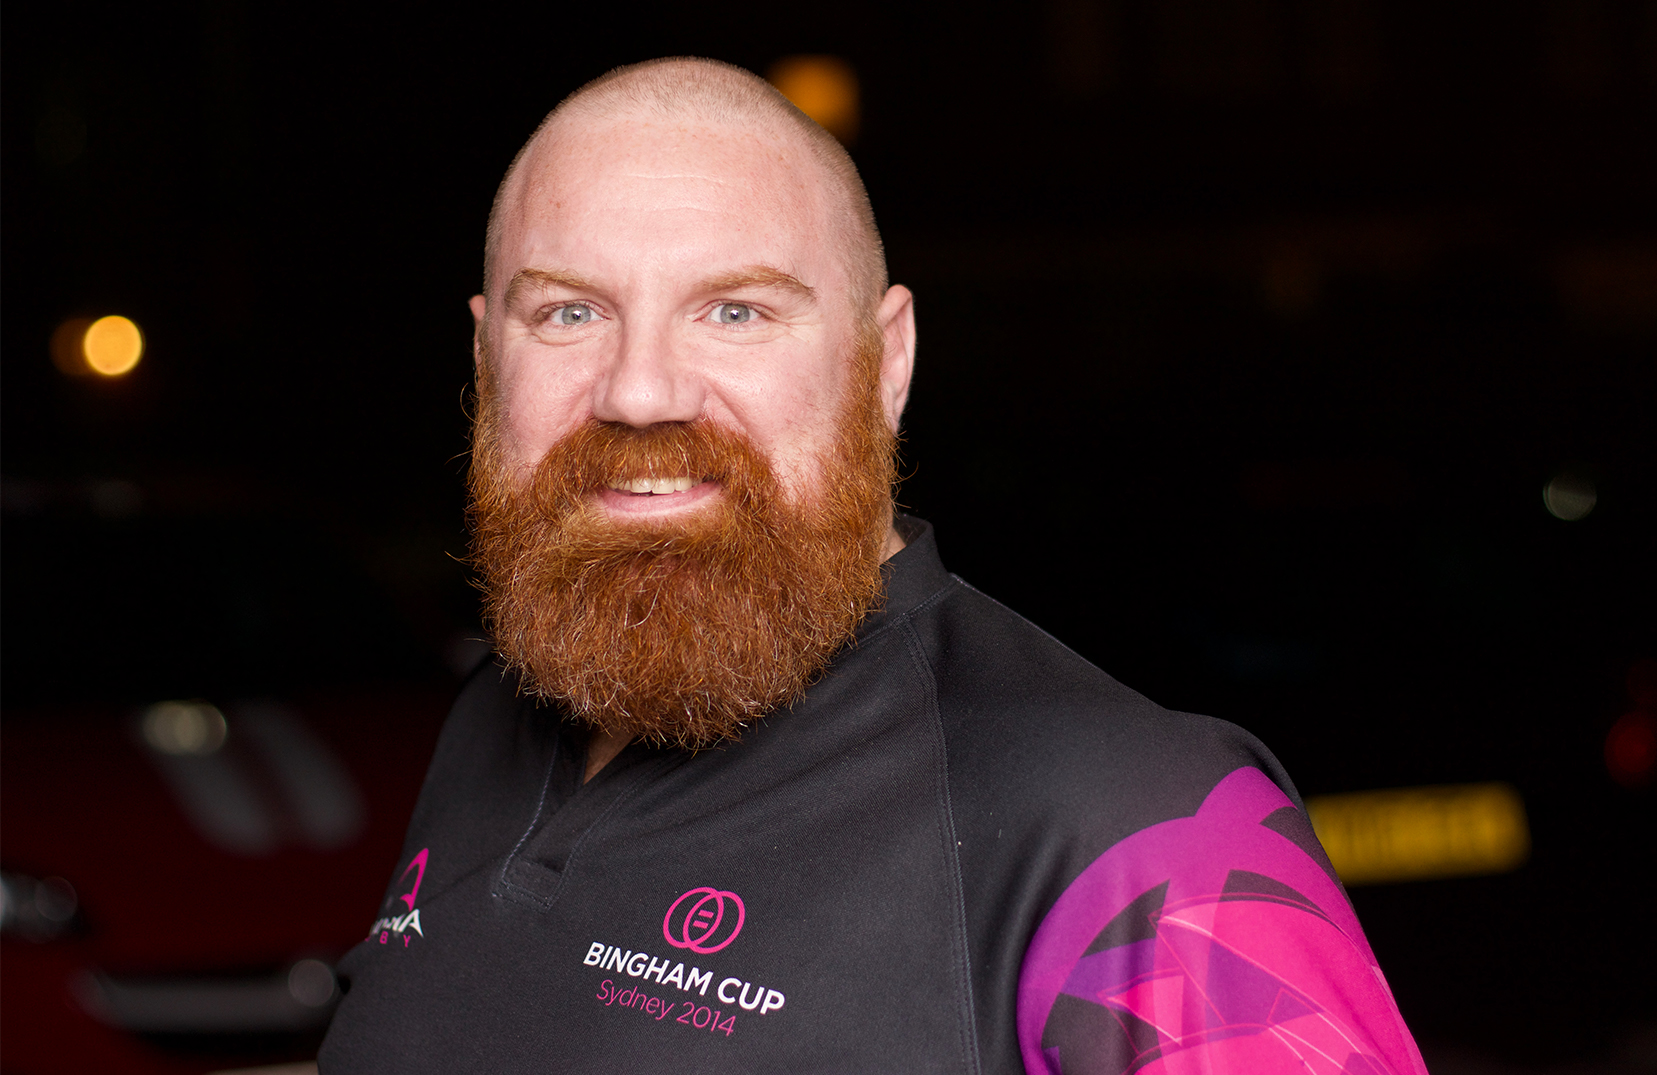 David Fox - Manchester Village Spartans - Inclusive Rugby - Gay Rugby